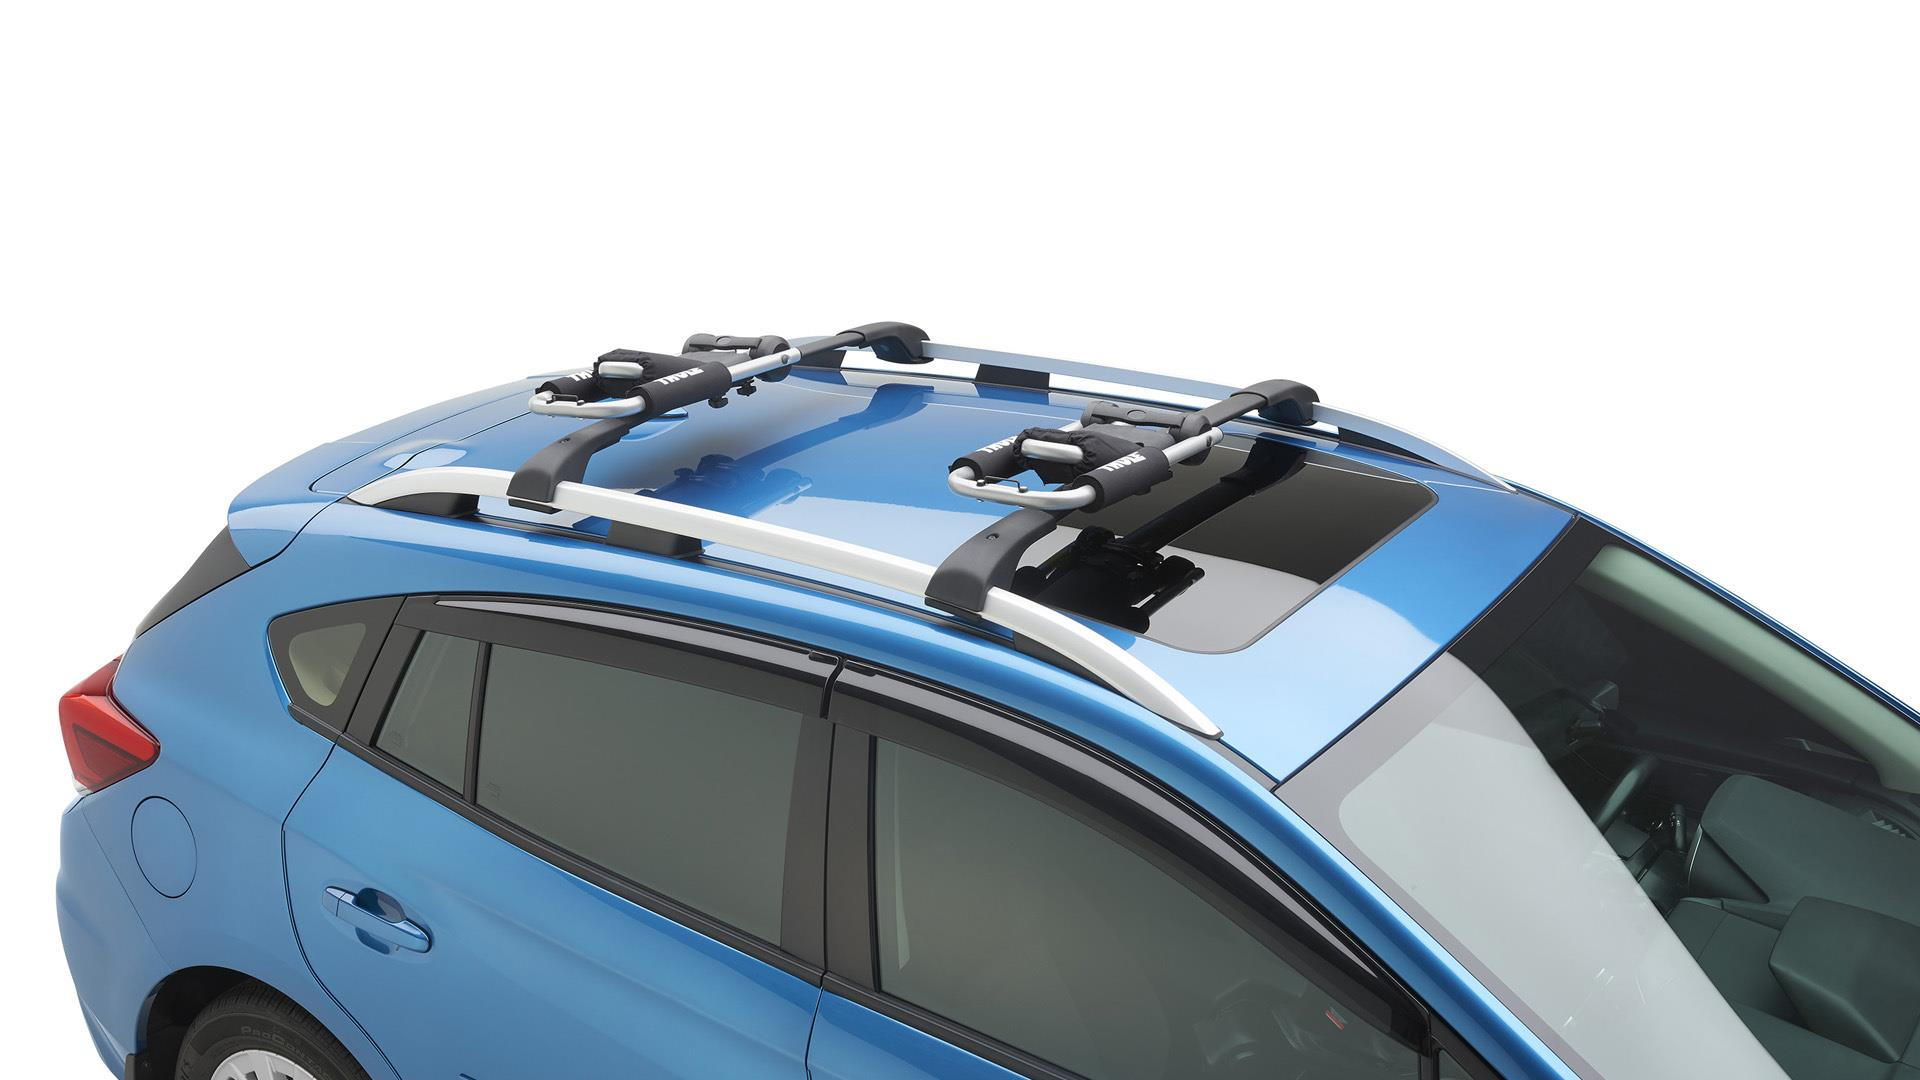 2017 subaru outback kayak carrier thule wide. Black Bedroom Furniture Sets. Home Design Ideas